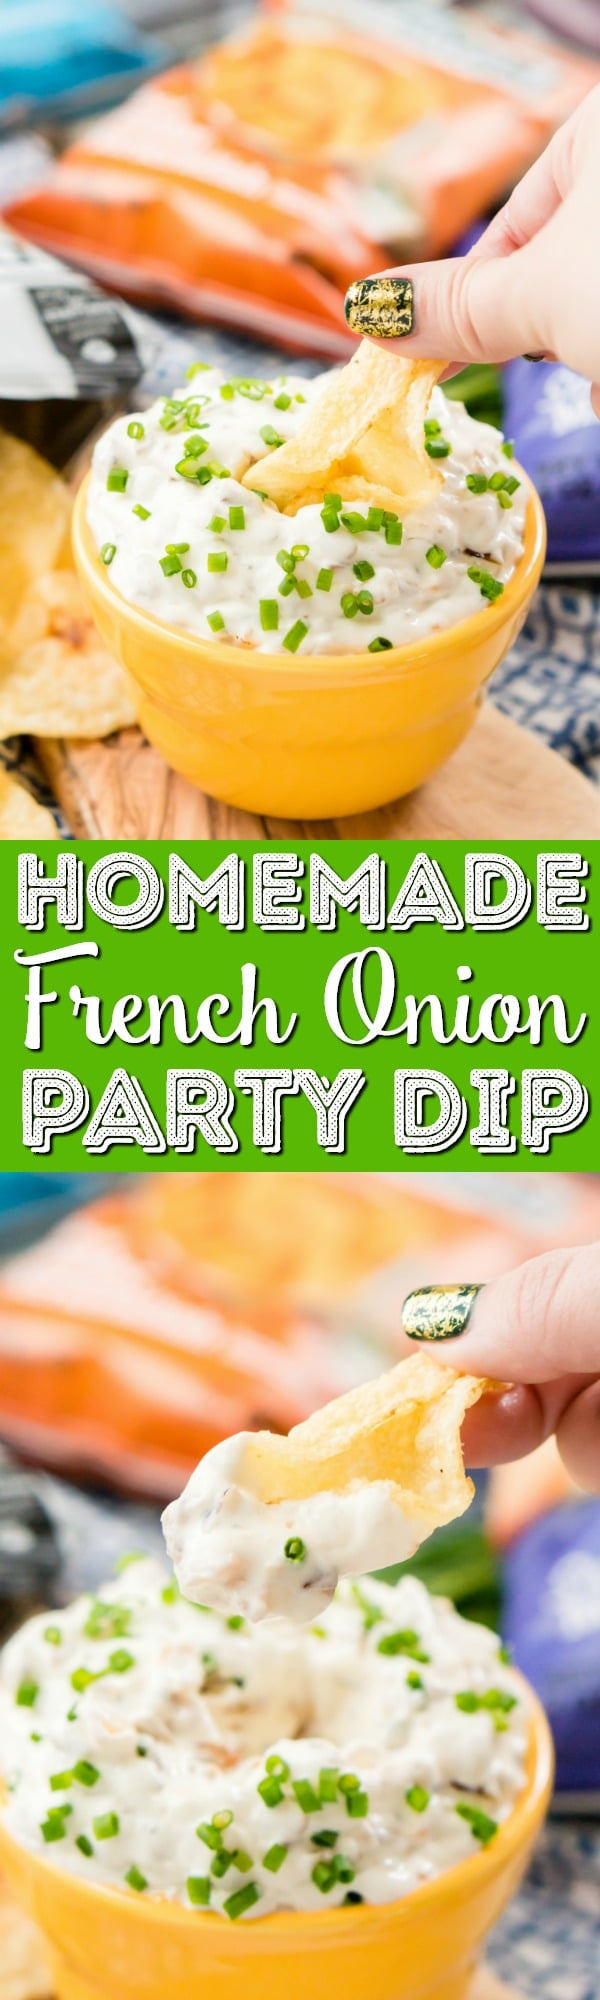 This French Onion Dip is an easy and delicious appetizer recipe, serve it with chips for an instant party favorite! via @sugarandsoulco